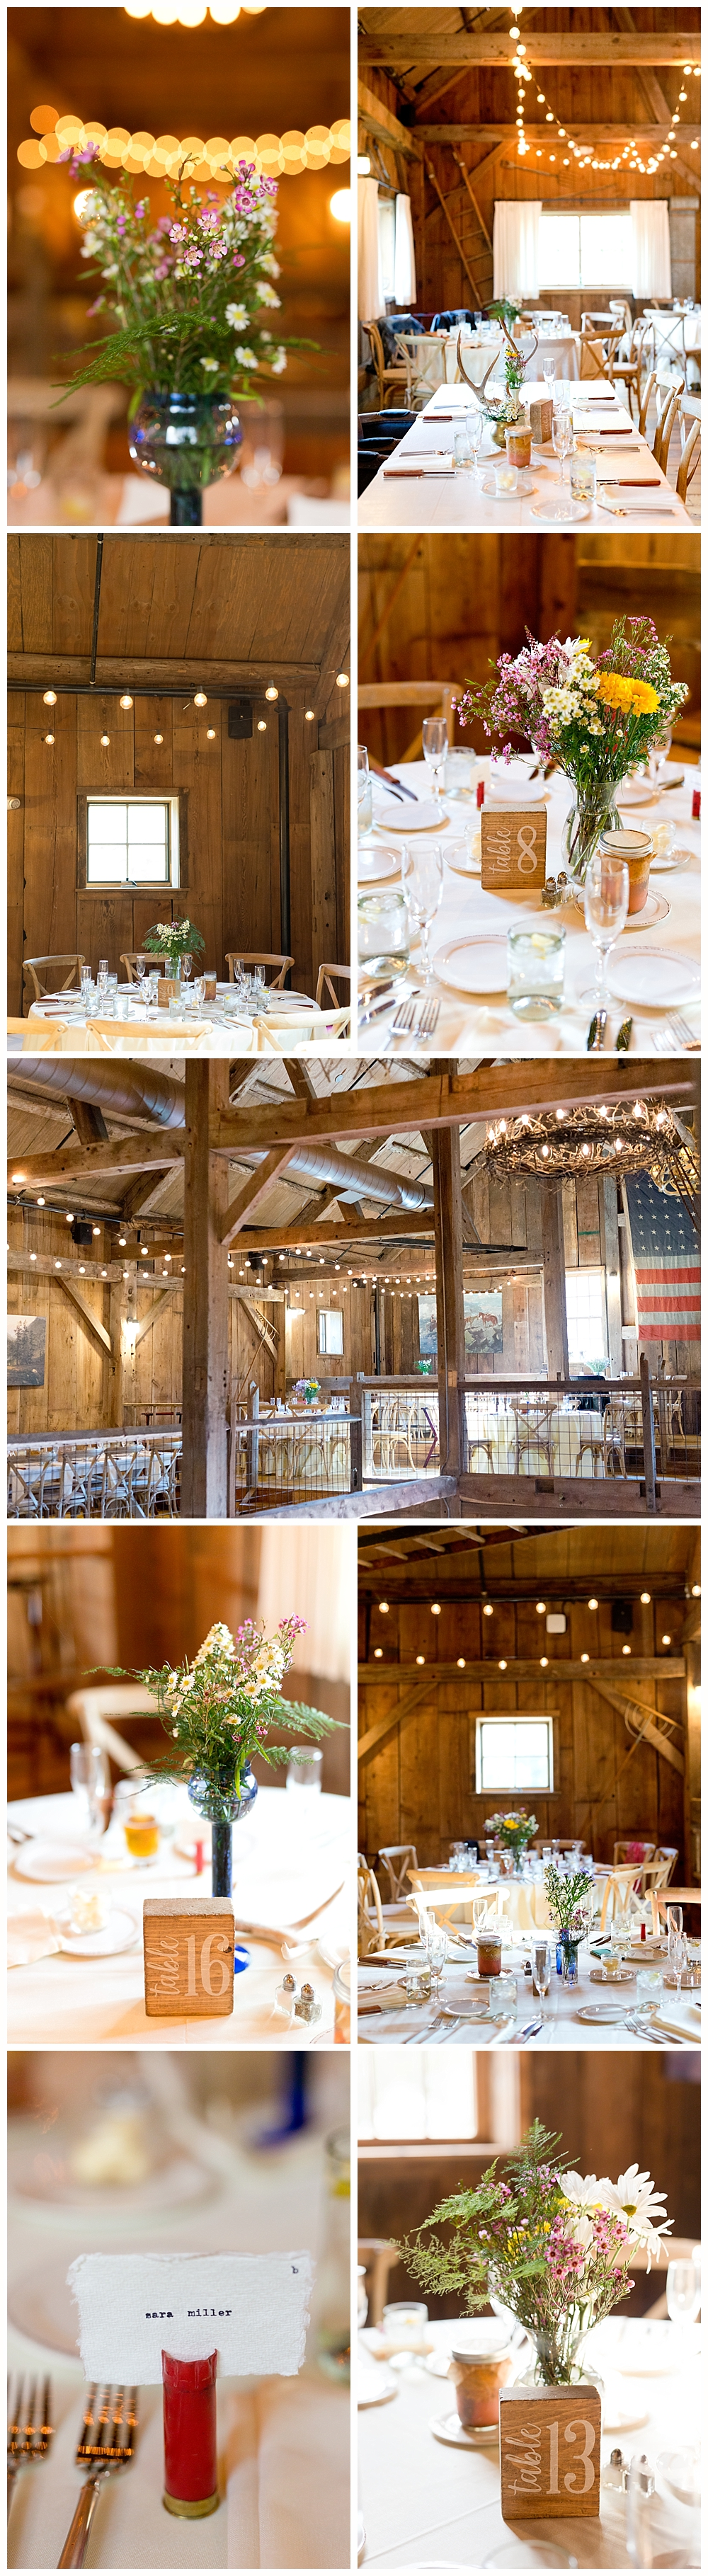 rustic barn wedding decorations at Holderness, NH wedding - The Barn on the Pemi wedding venue